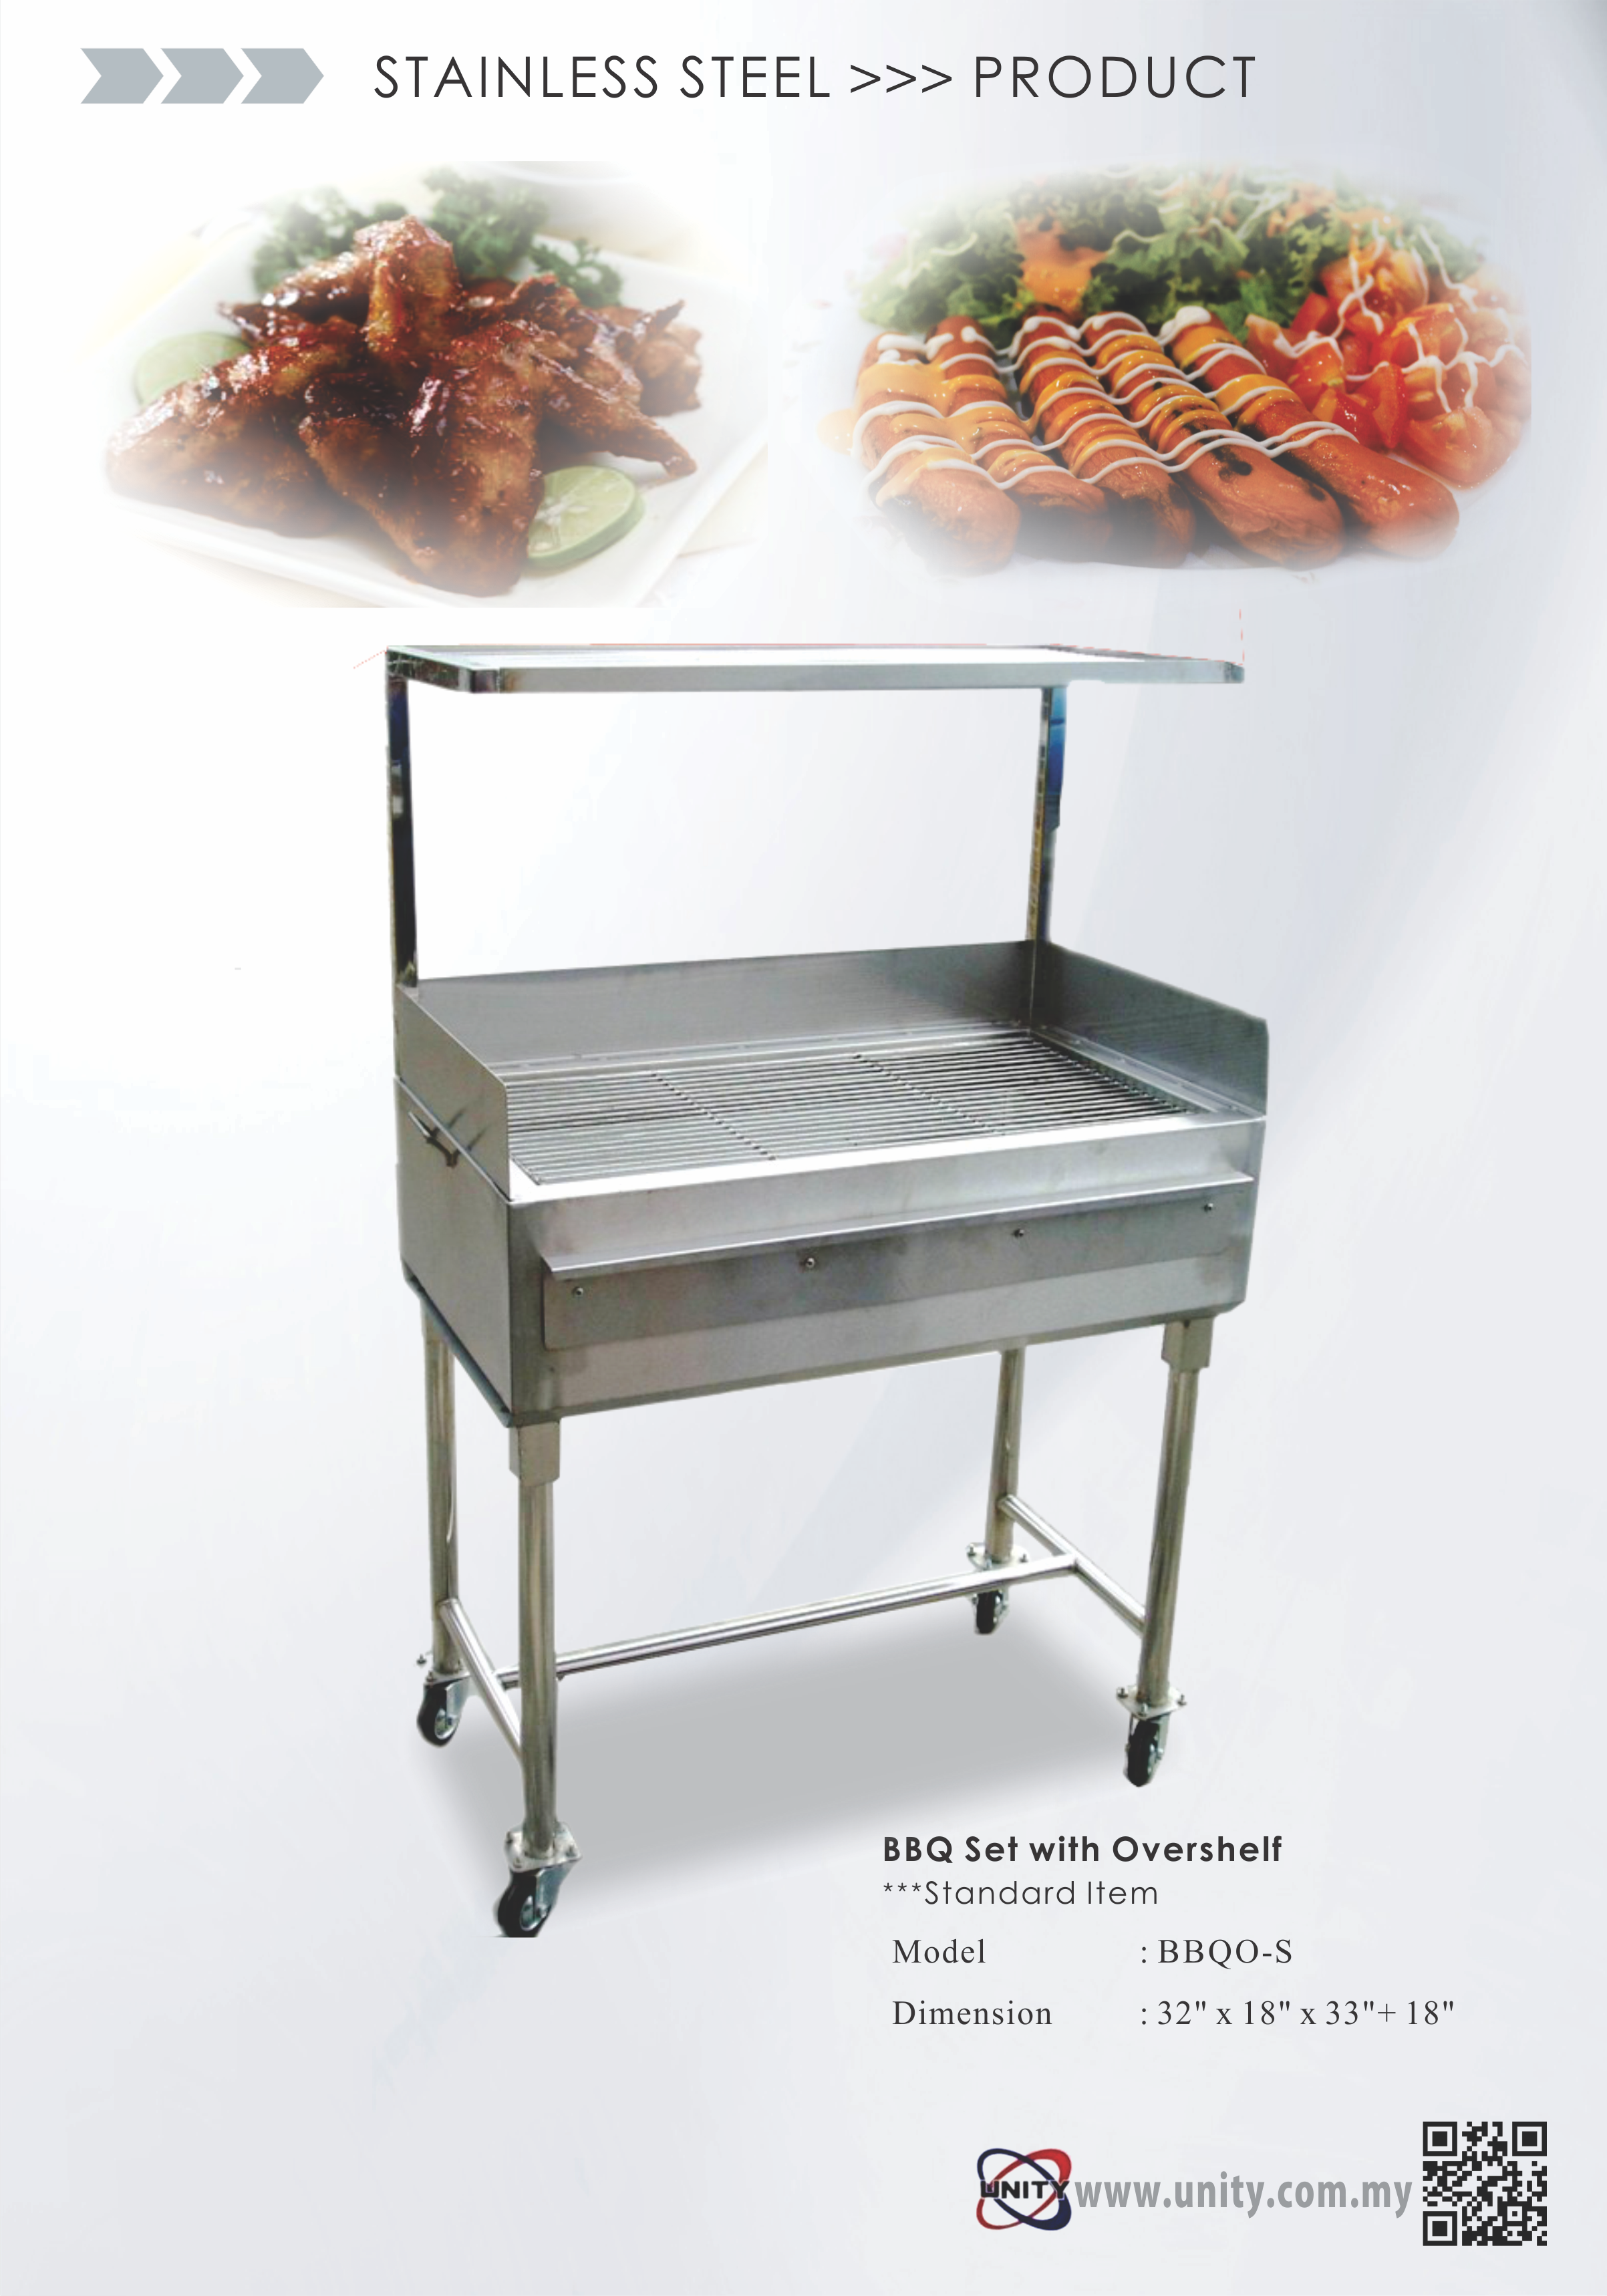 BBQ Set with overshelf